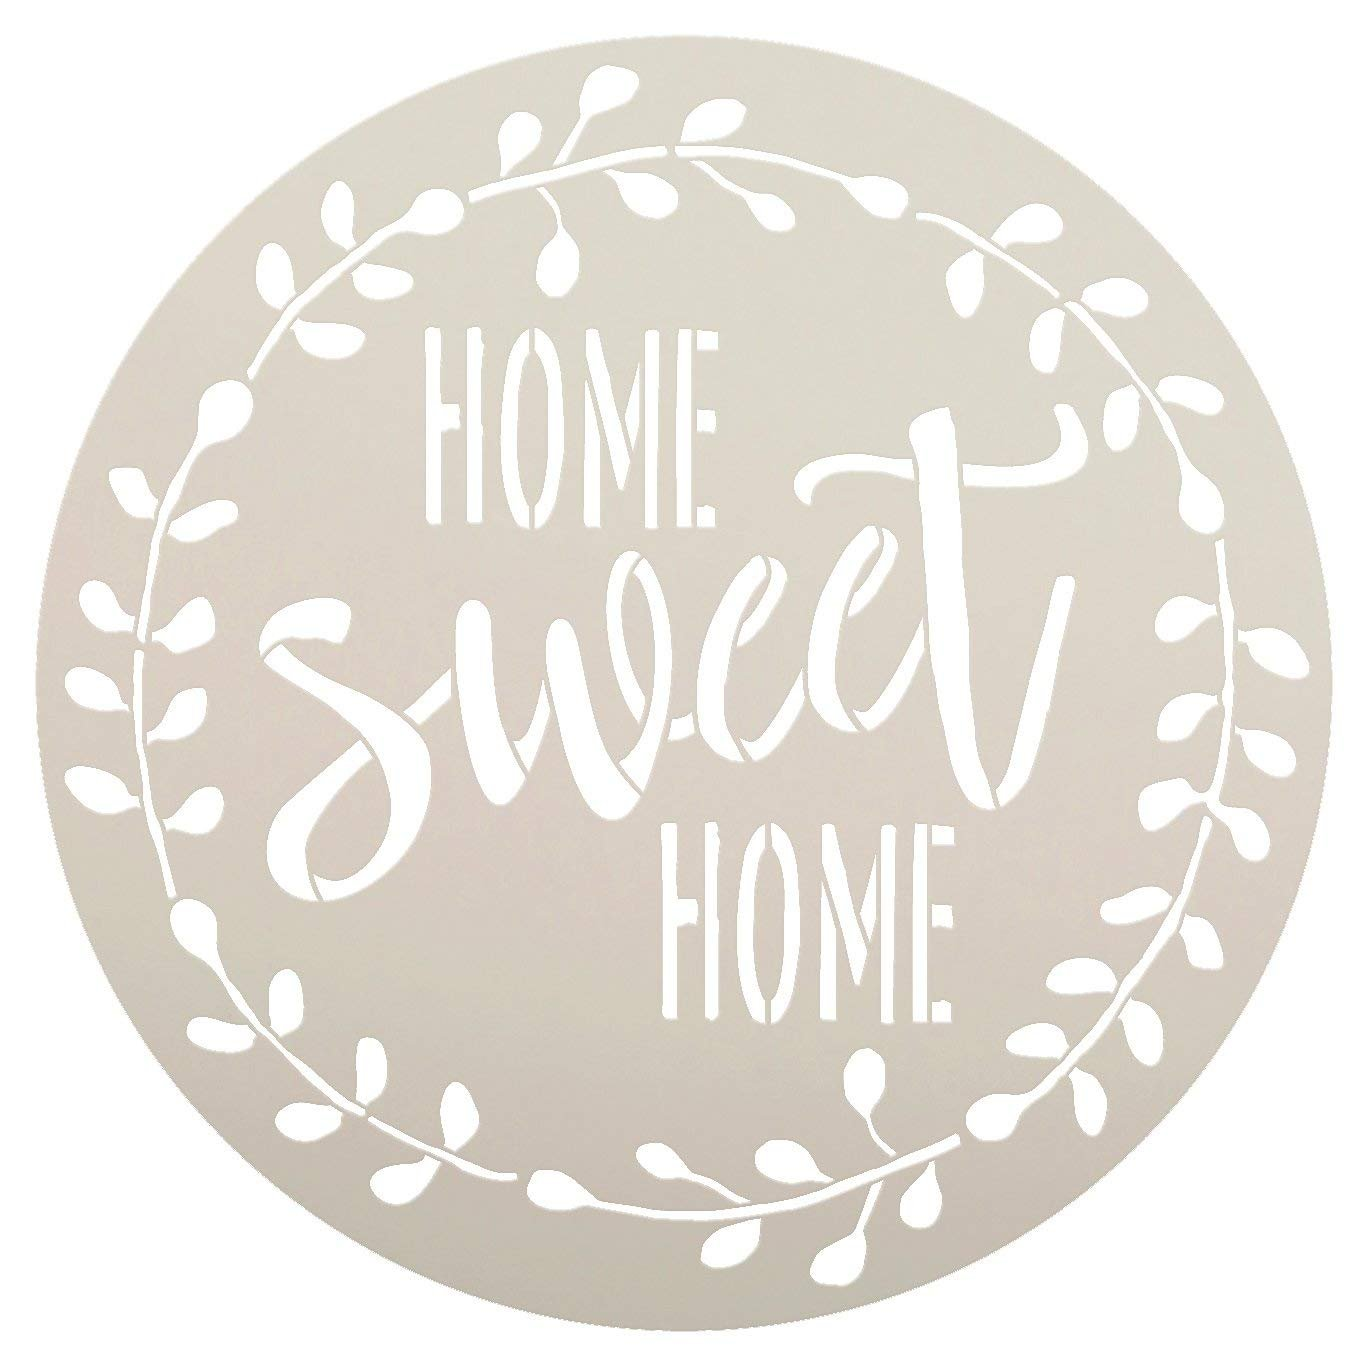 Home Sweet Home Stencil with Laurel Wreath by StudioR12 | Reusable Mylar Template for Painting Wood Signs |... by Studio R 12